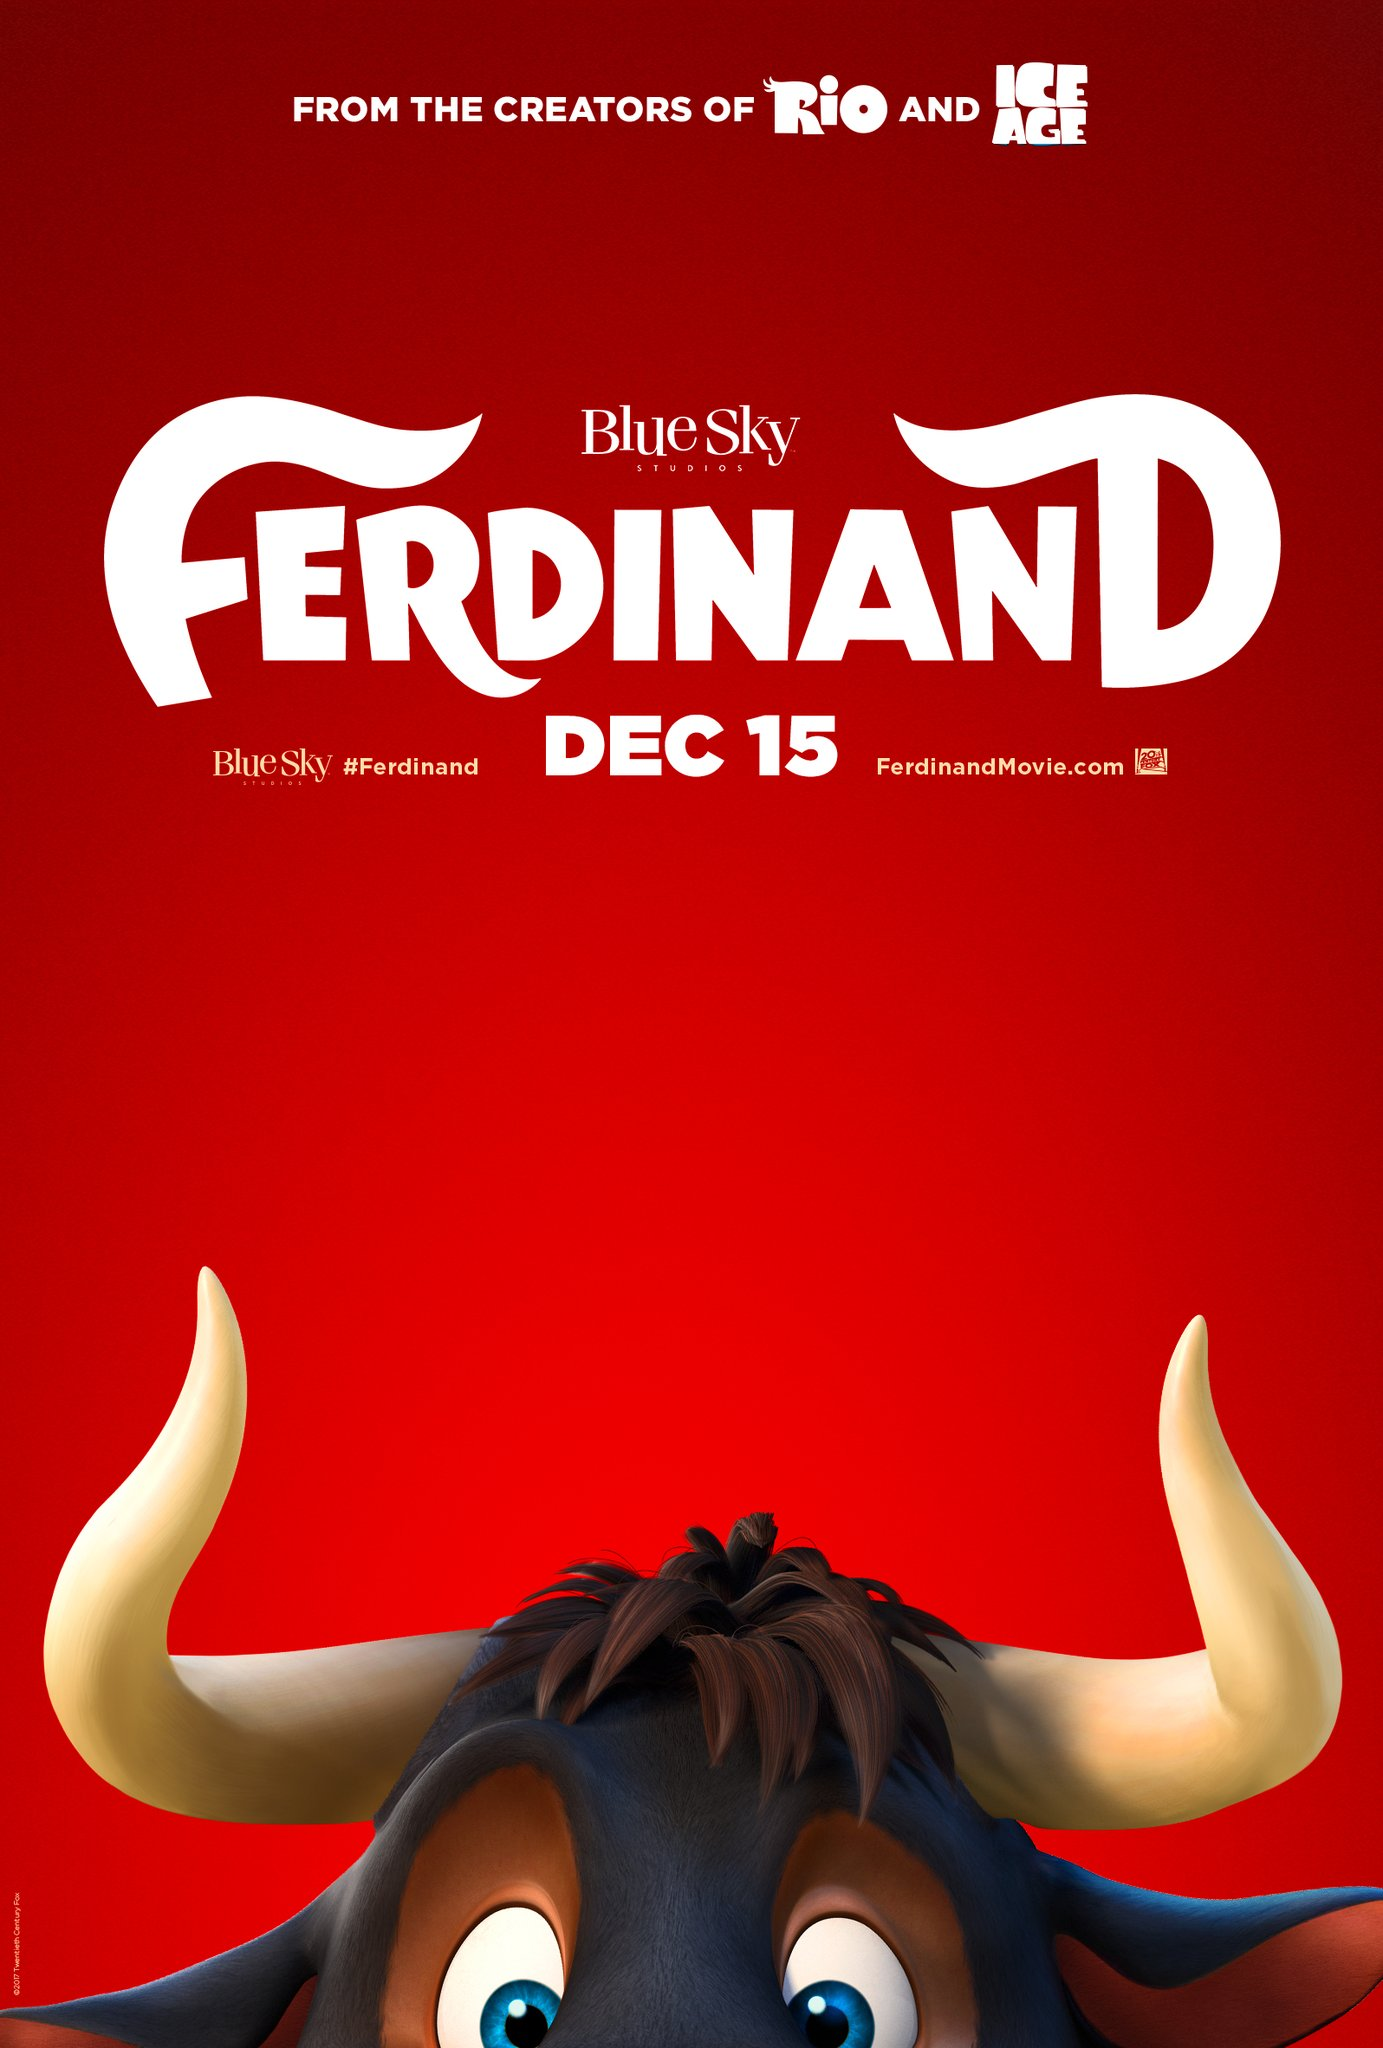 [Image: Ferdinand-new-movie-poster.jpg?ssl=1]